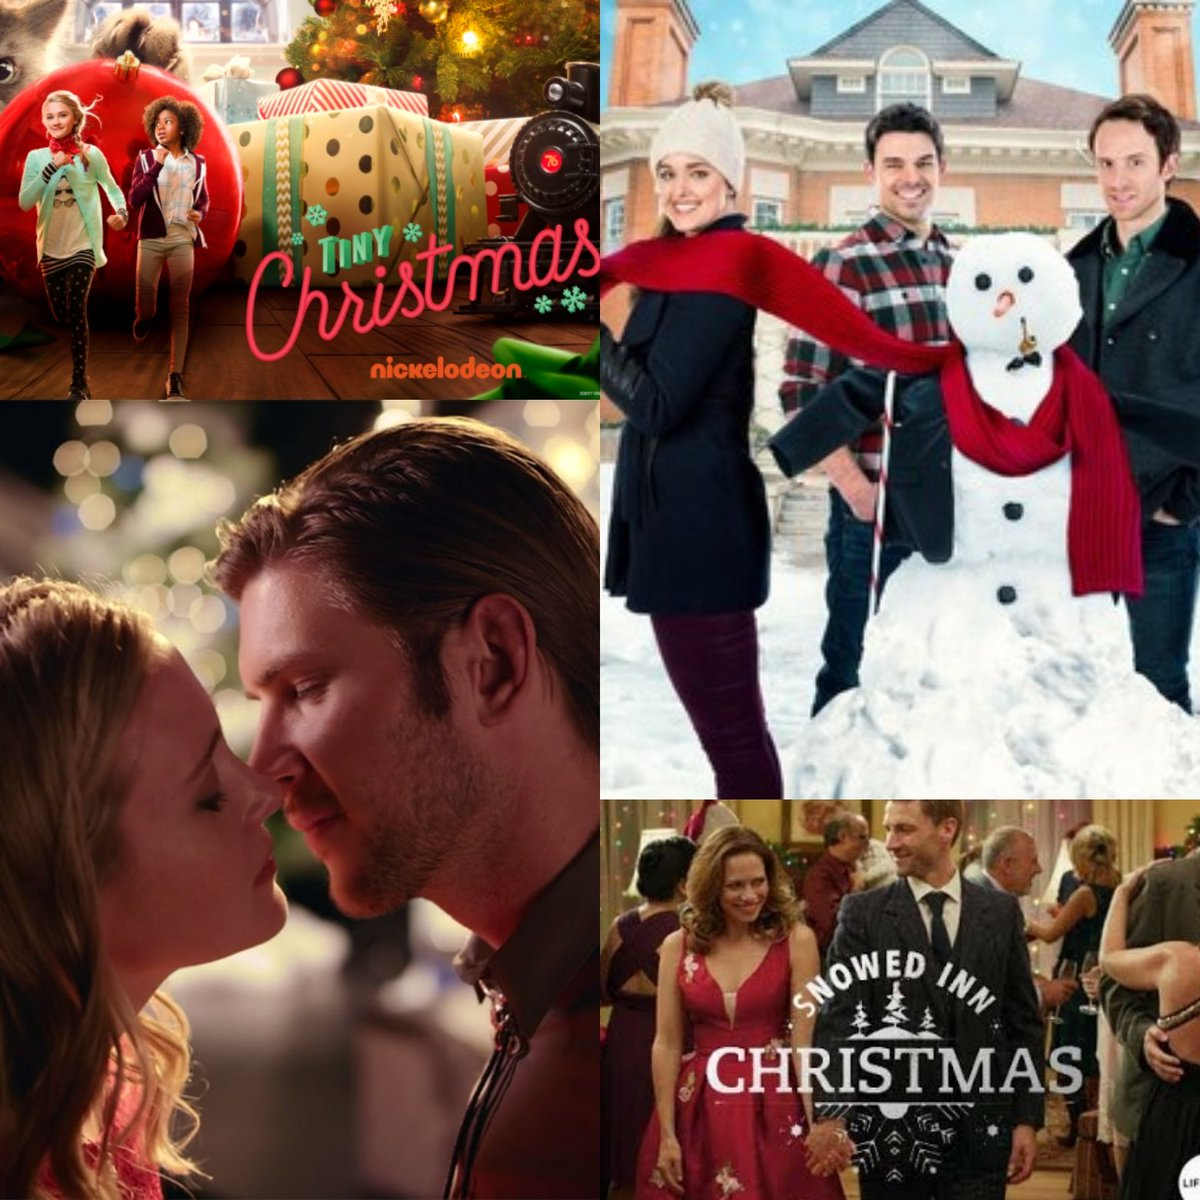 Snowed Inn Christmas.Rachel S Reviews On Twitter 2017 Best Lifetimetv Holiday